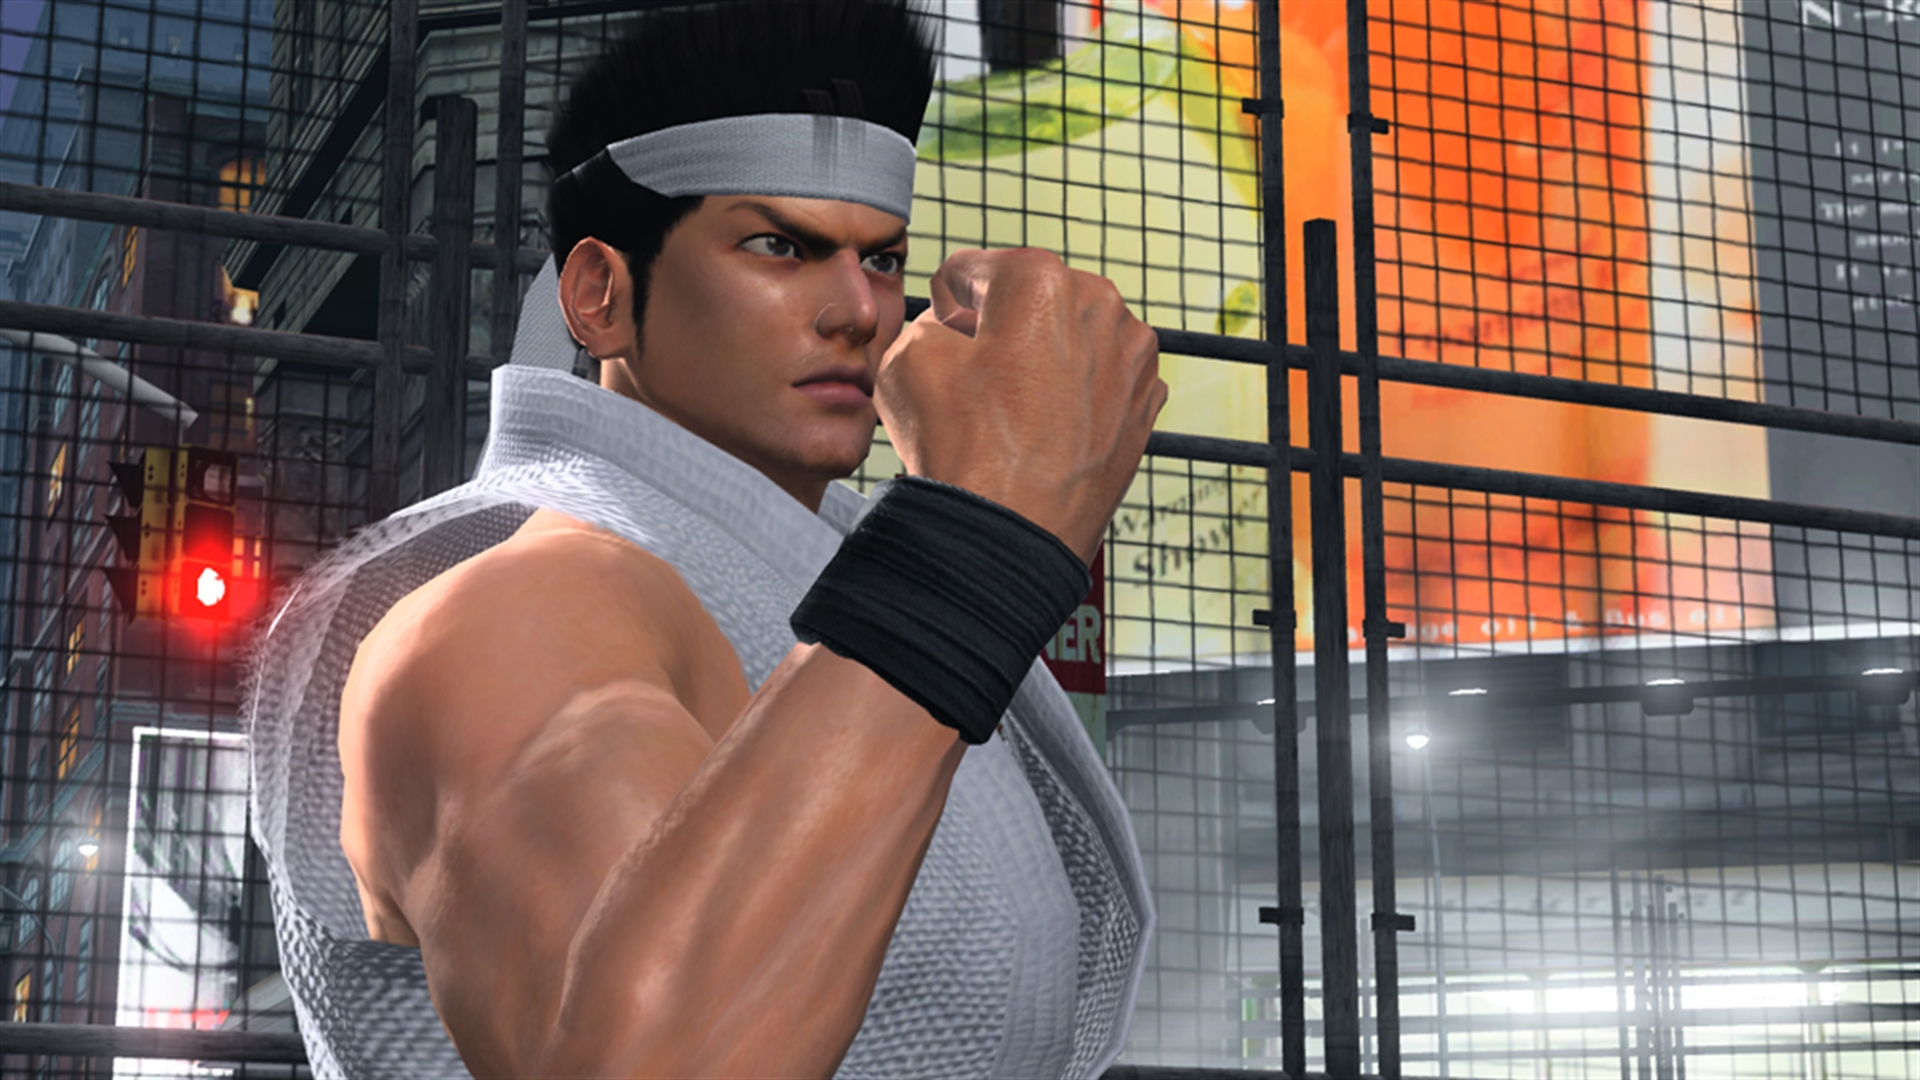 Akira poses in a screenshot from Virtua Fighter 5